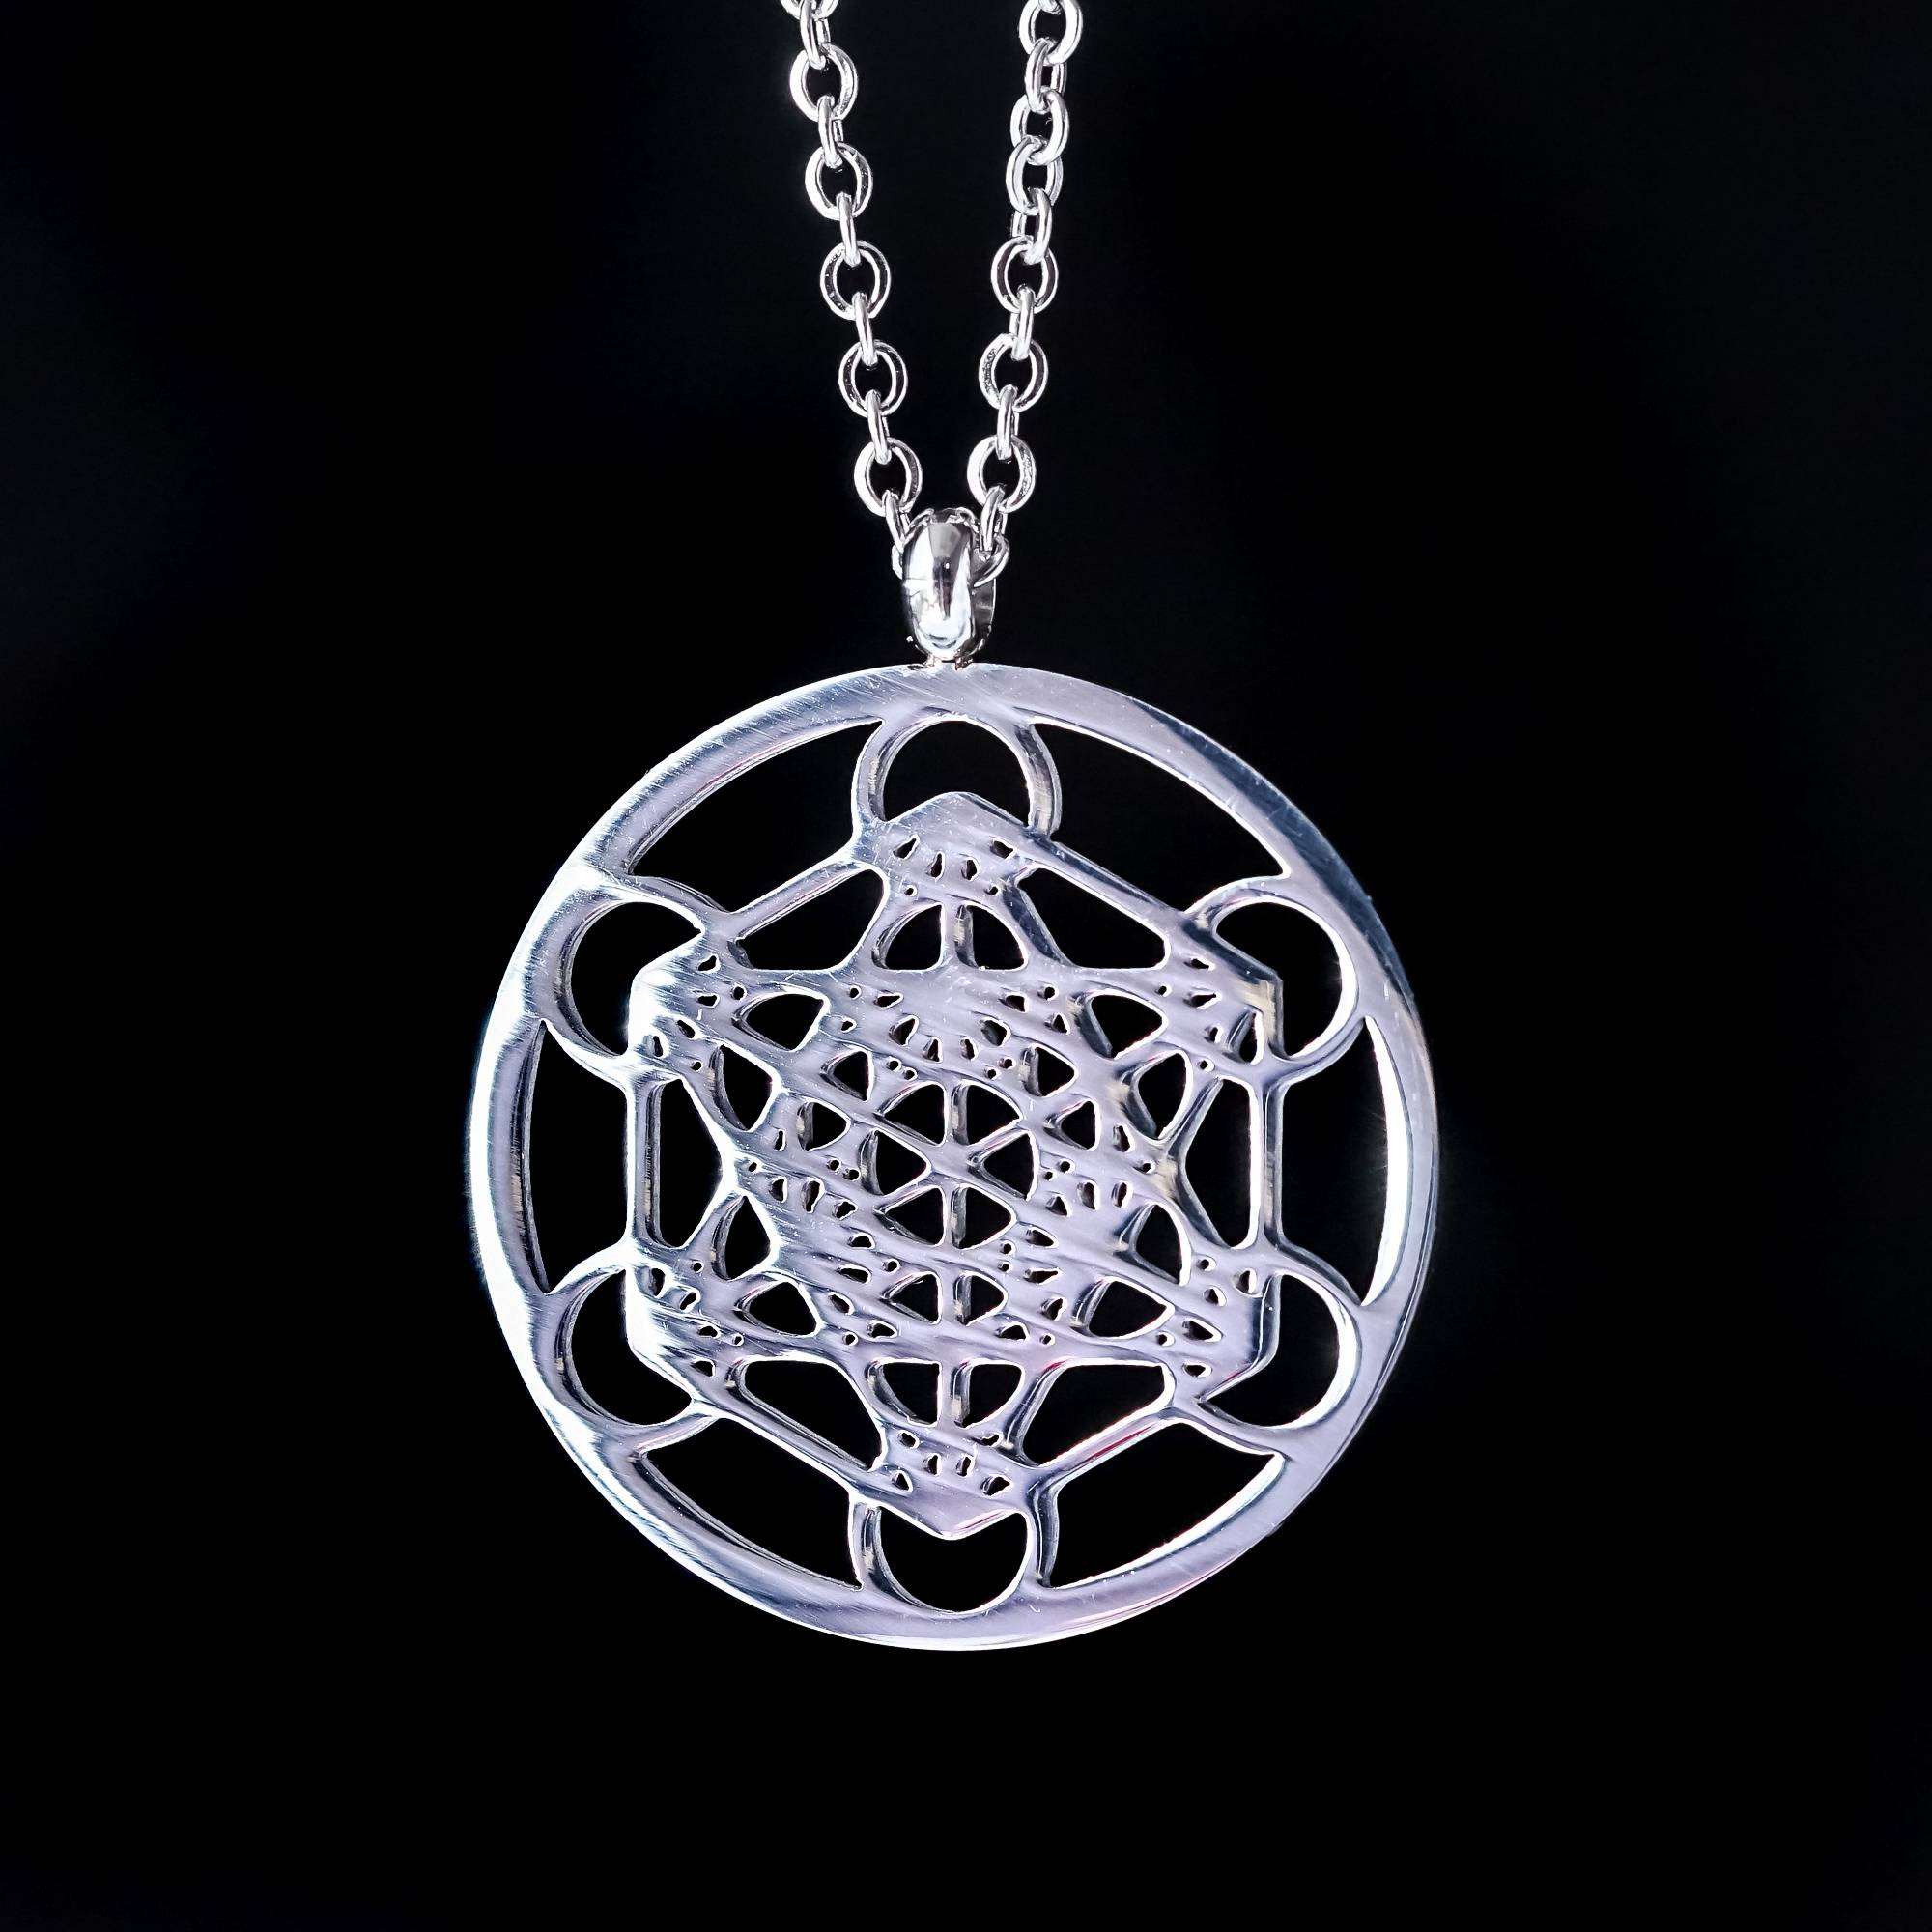 Metatrons cube necklace to connect with all sacred shapes metatrons cube necklace aloadofball Gallery